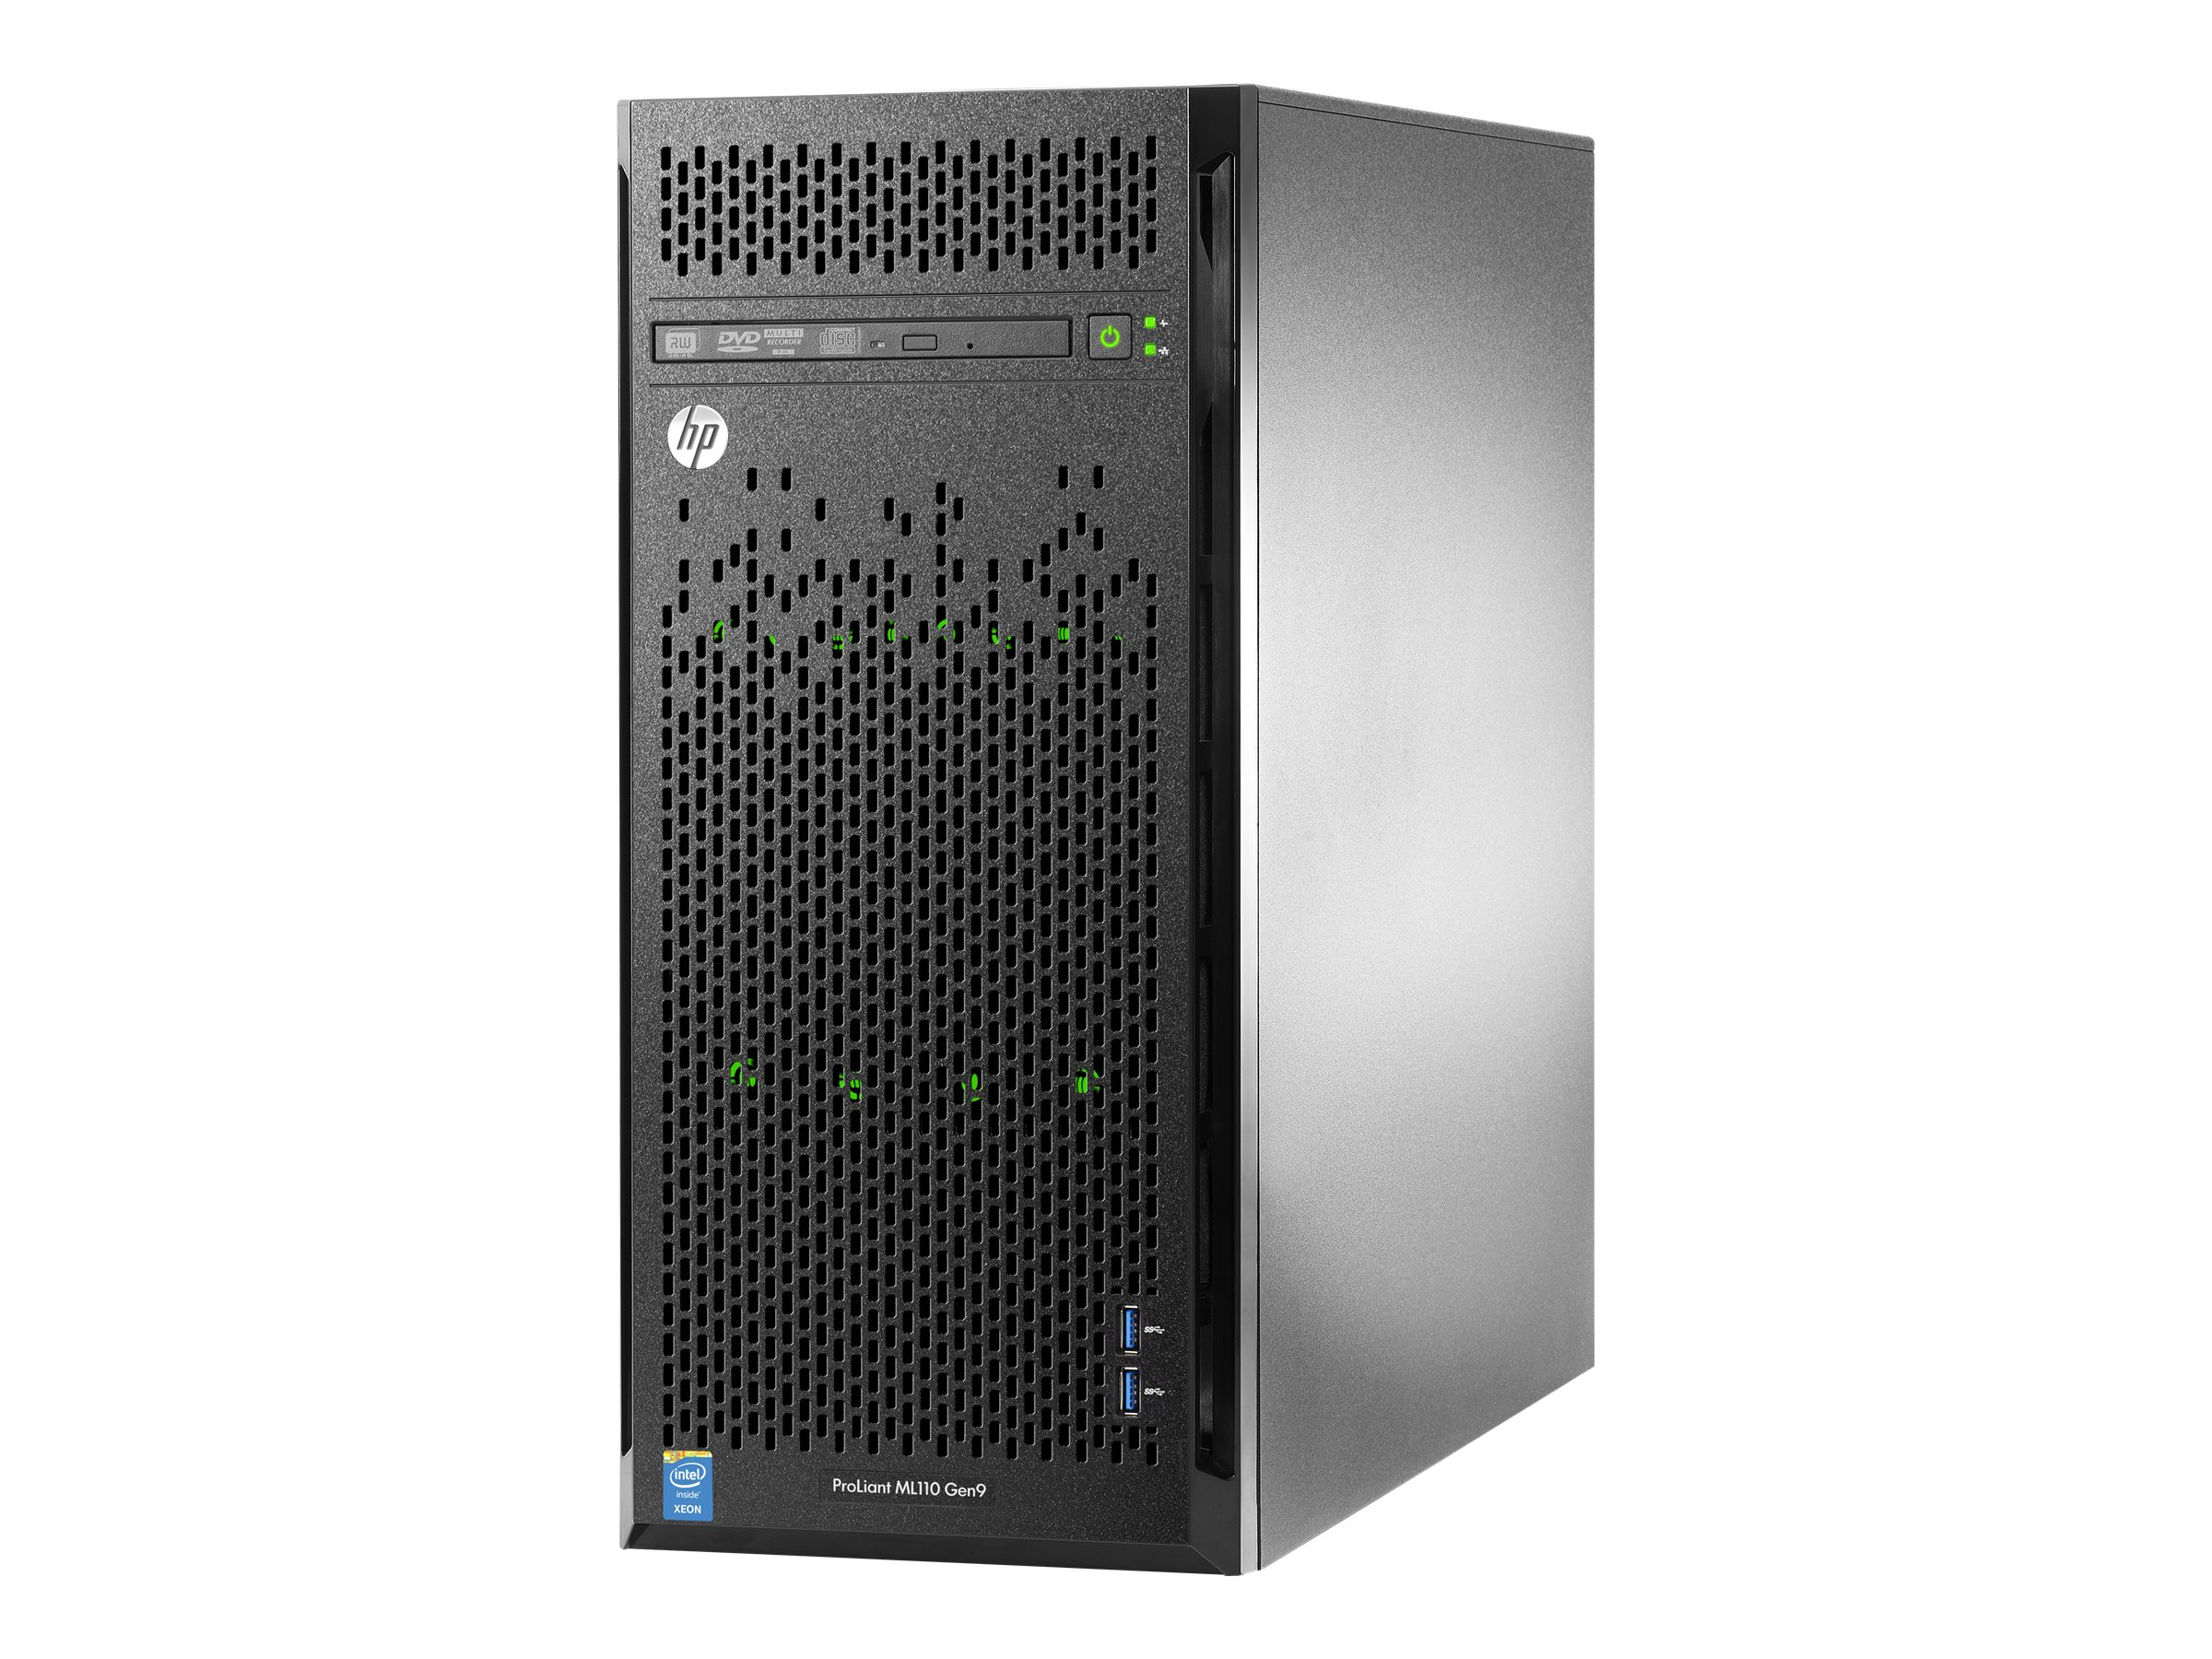 HPE ProLiant ML110 Gen9 Base - Server - Tower - 4.5U - 1-Weg - 1 x Xeon E5-2620V4 / 2.1 GHz